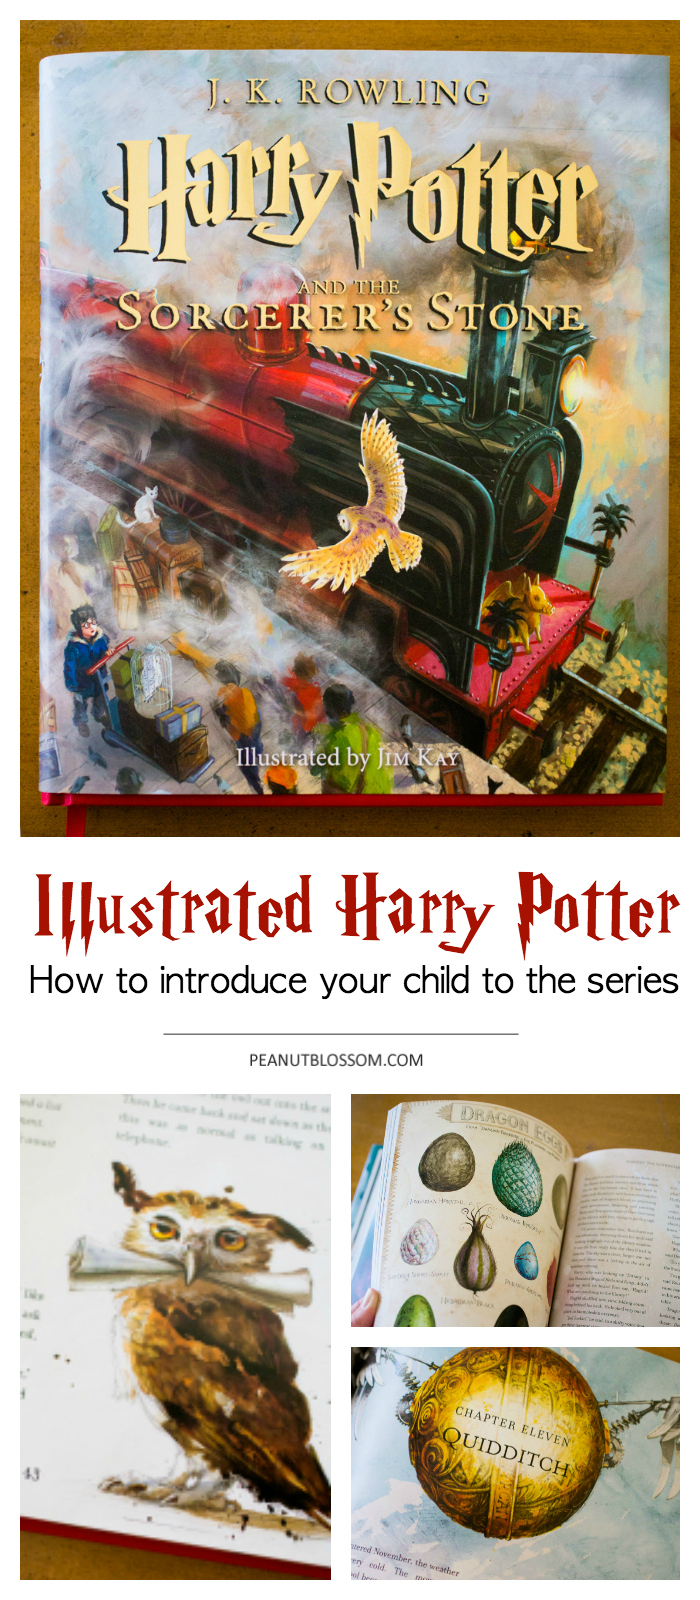 The Illustrated Harry Potter series